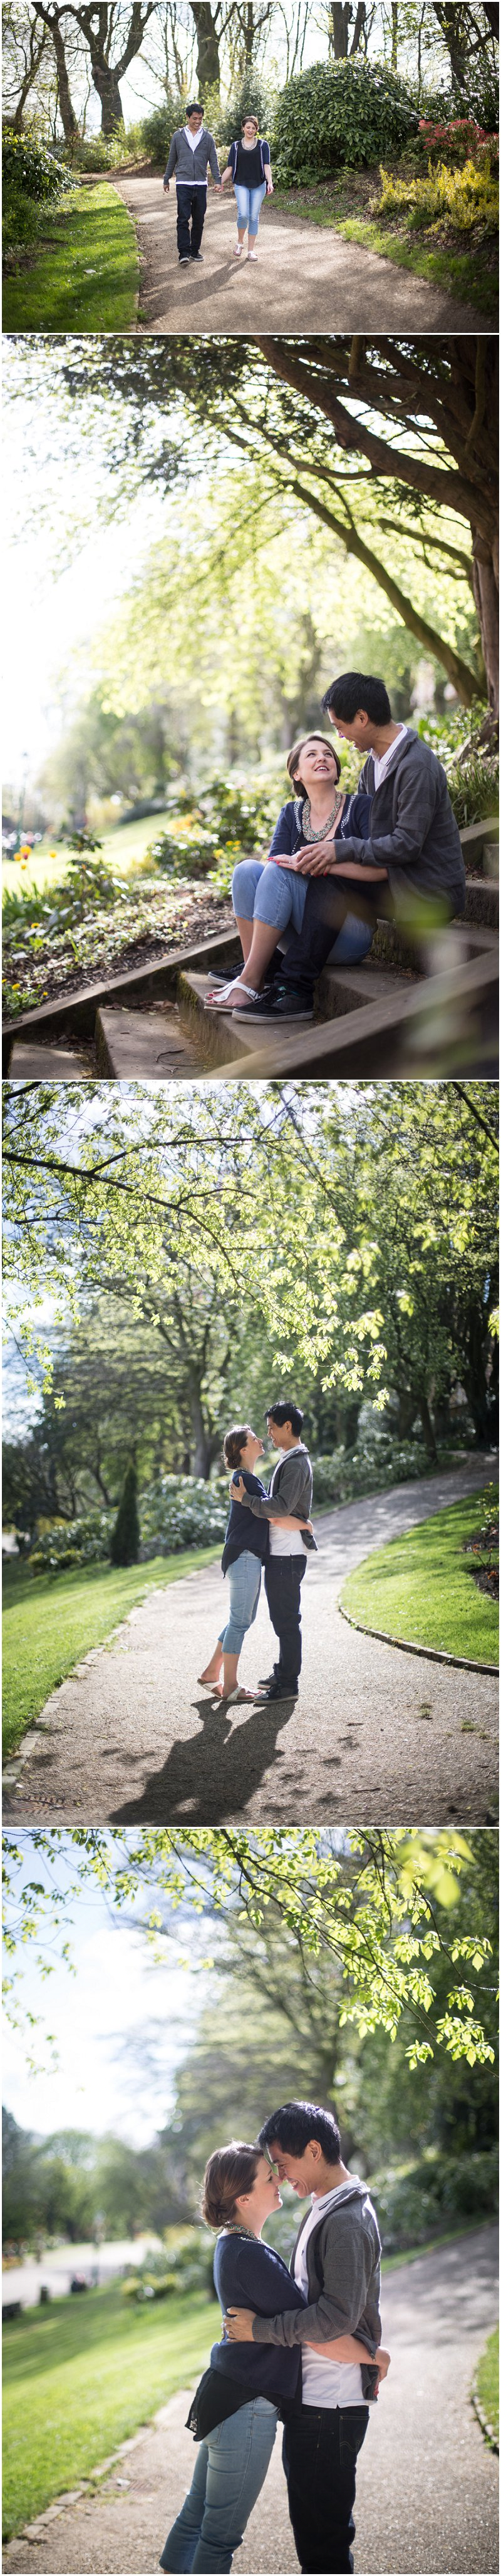 Couple in Avenham Park on gorgeous spring day photo shoot